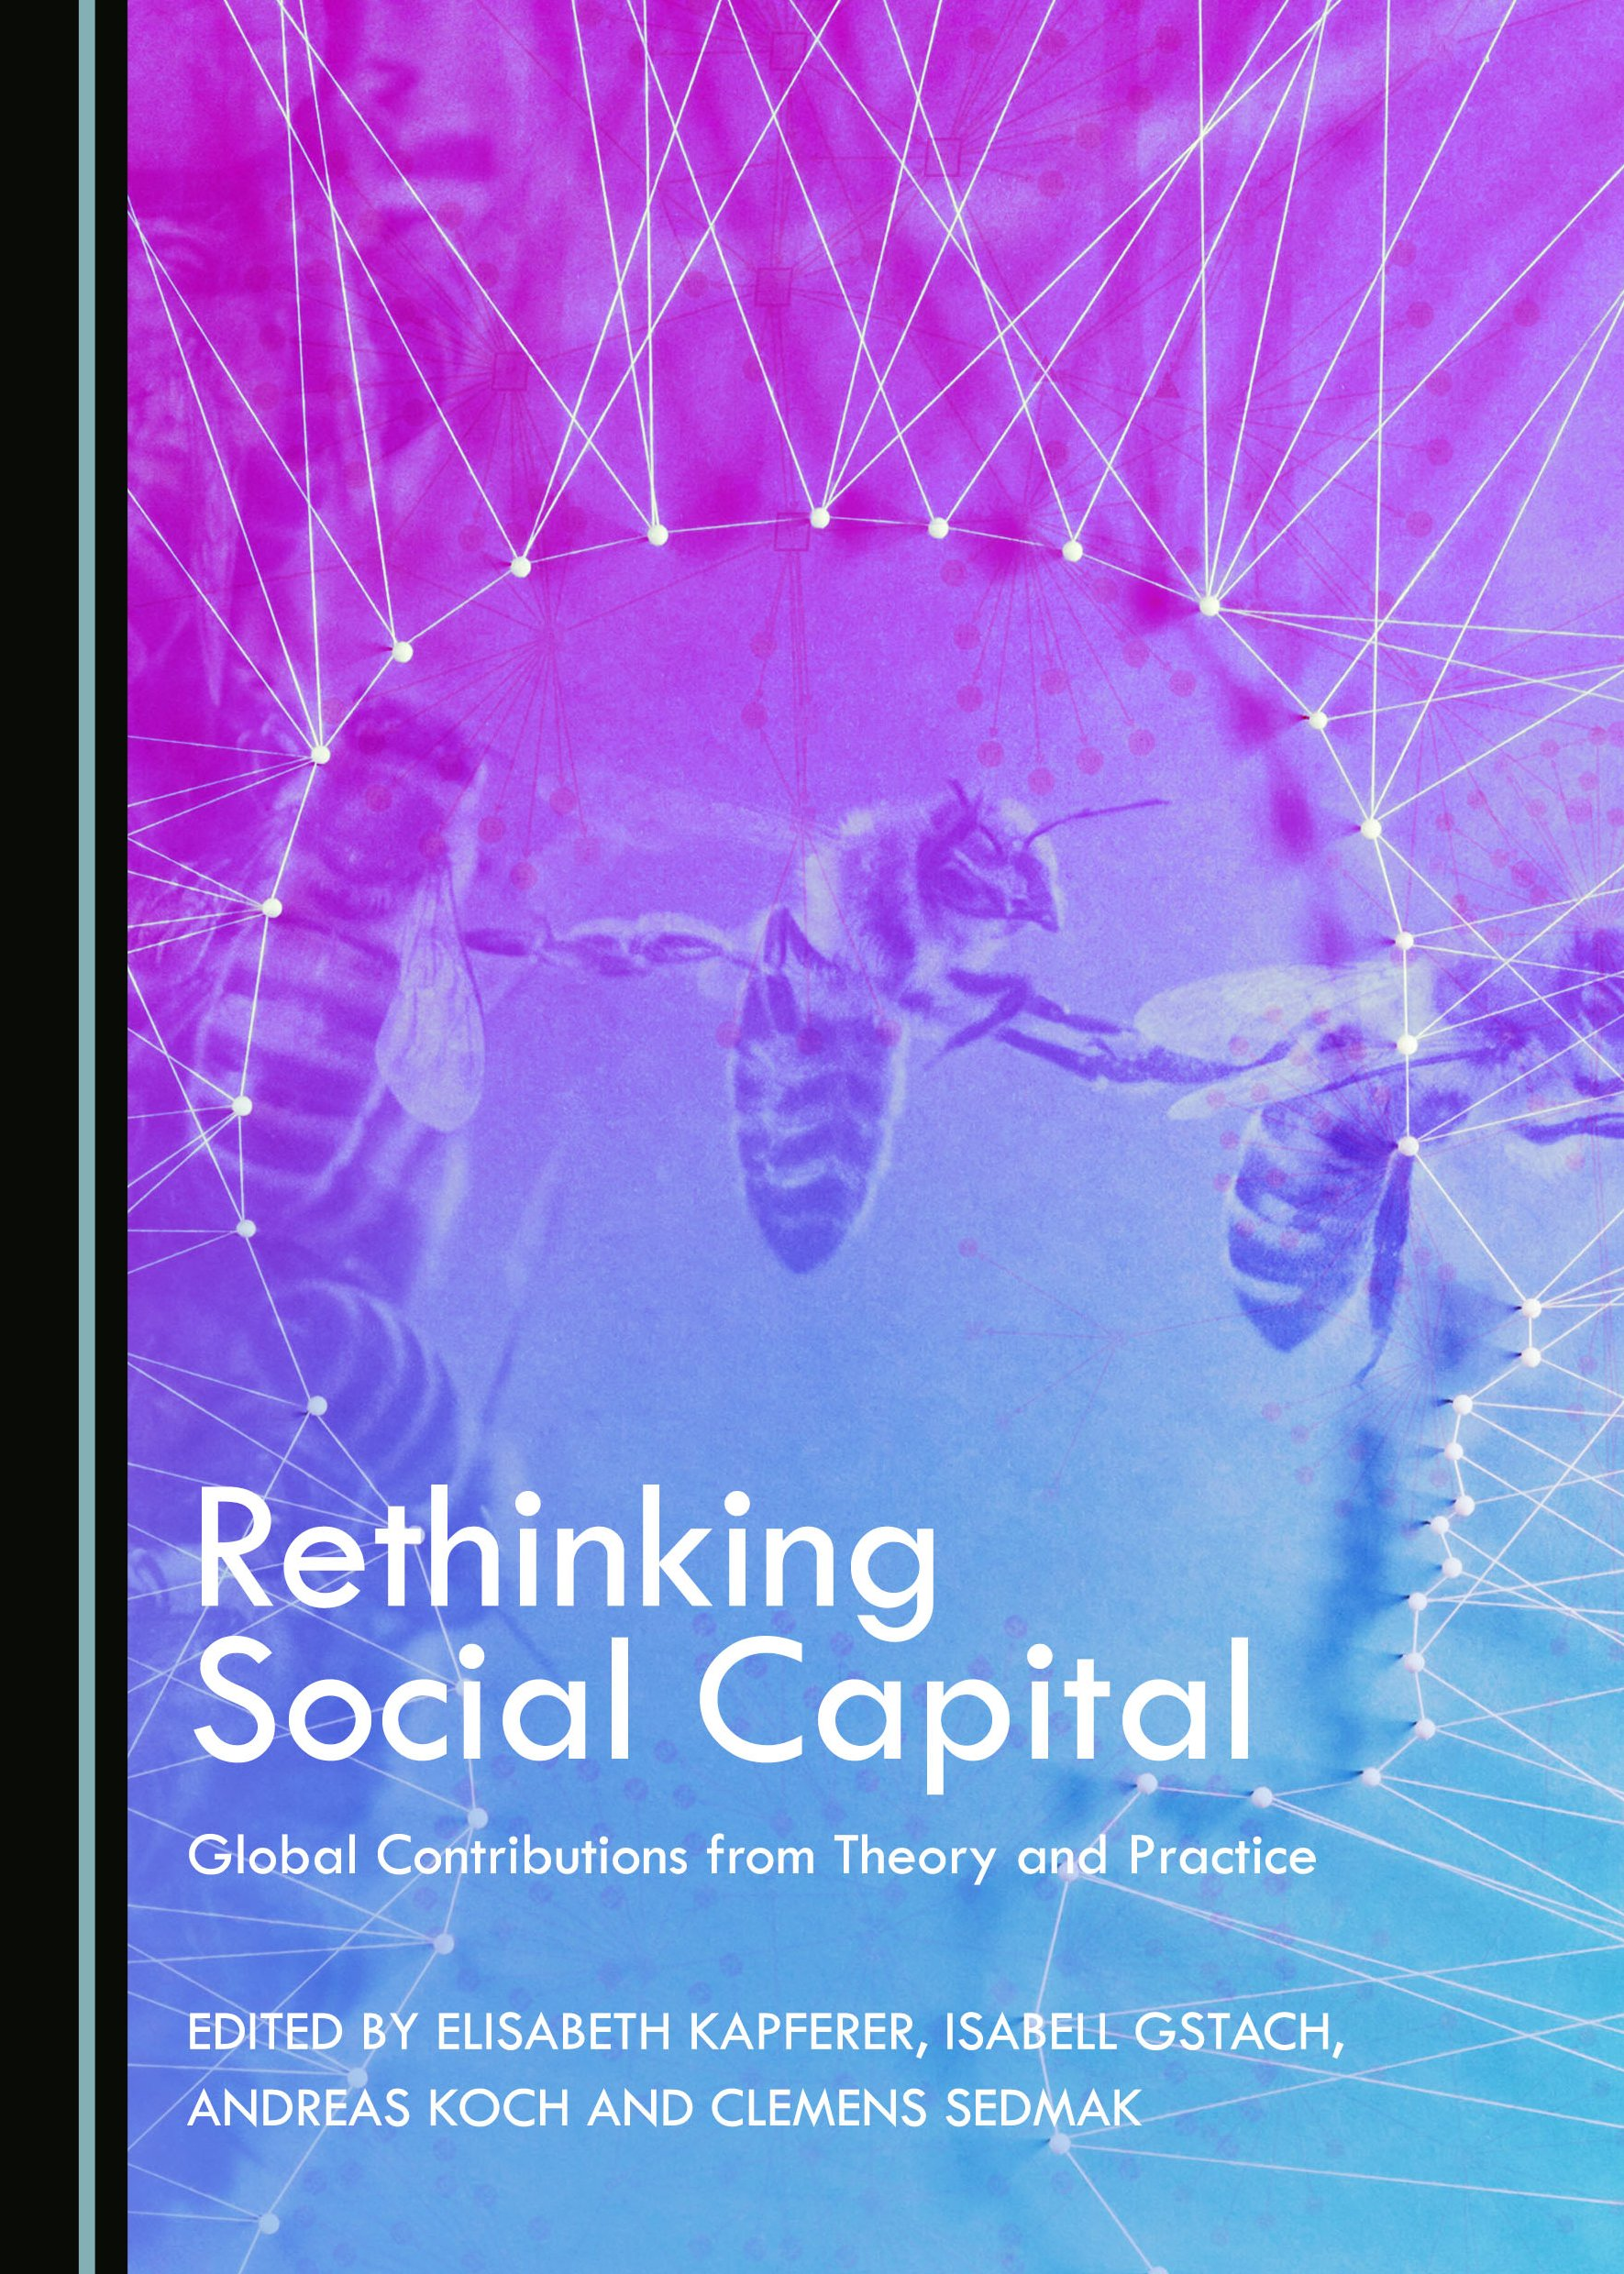 Rethinking Social Capital: Global Contributions from Theory and Practice